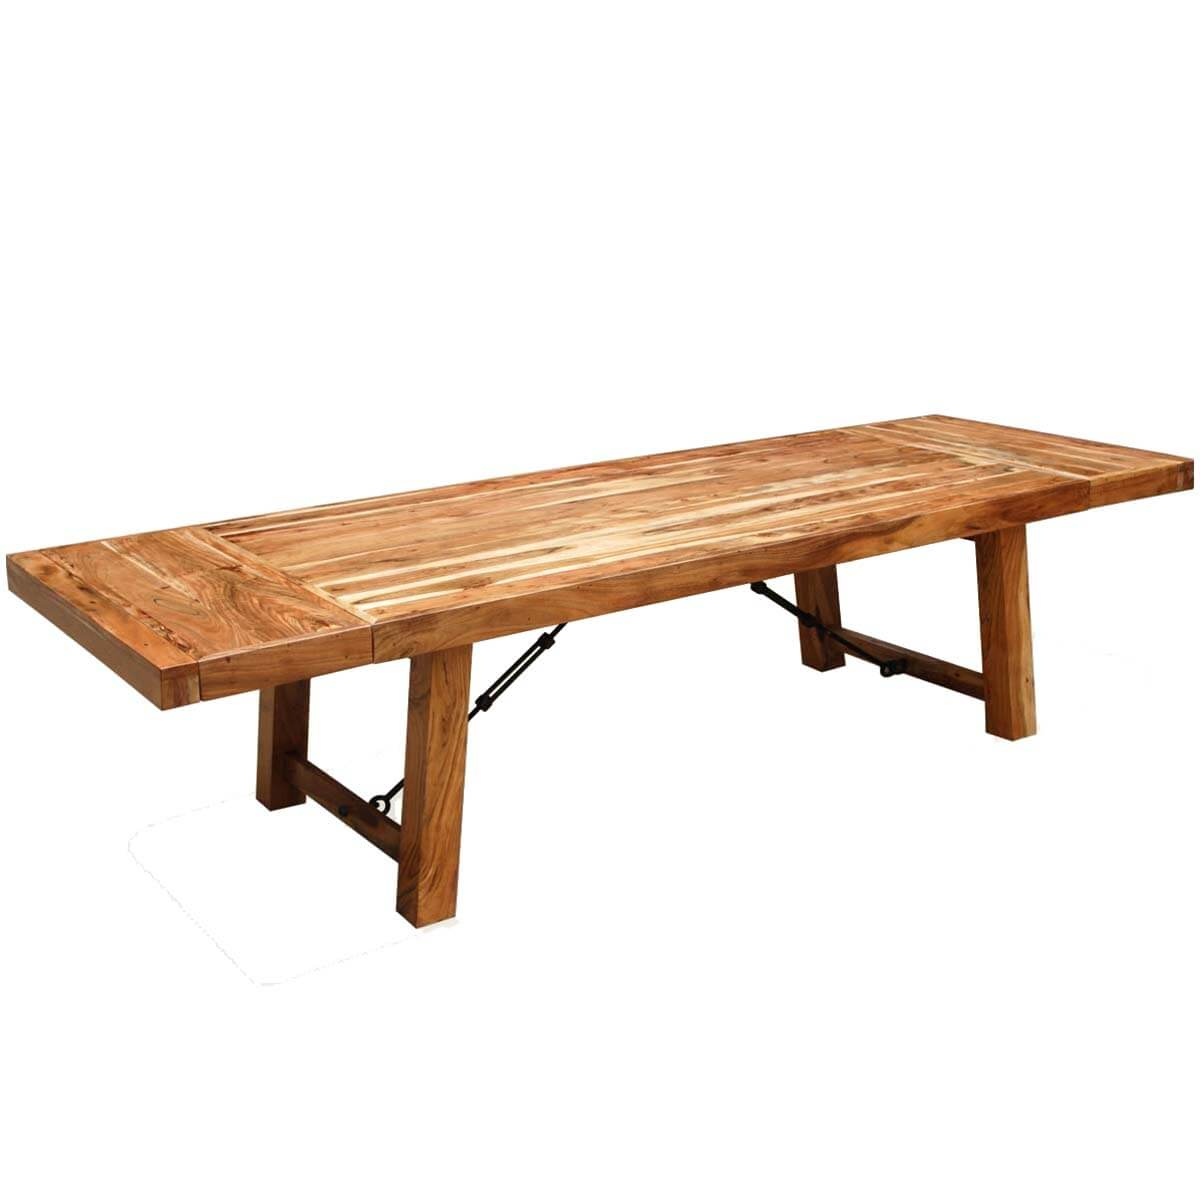 Rustic wood large santa fe dining room table w extensions for Large dining table